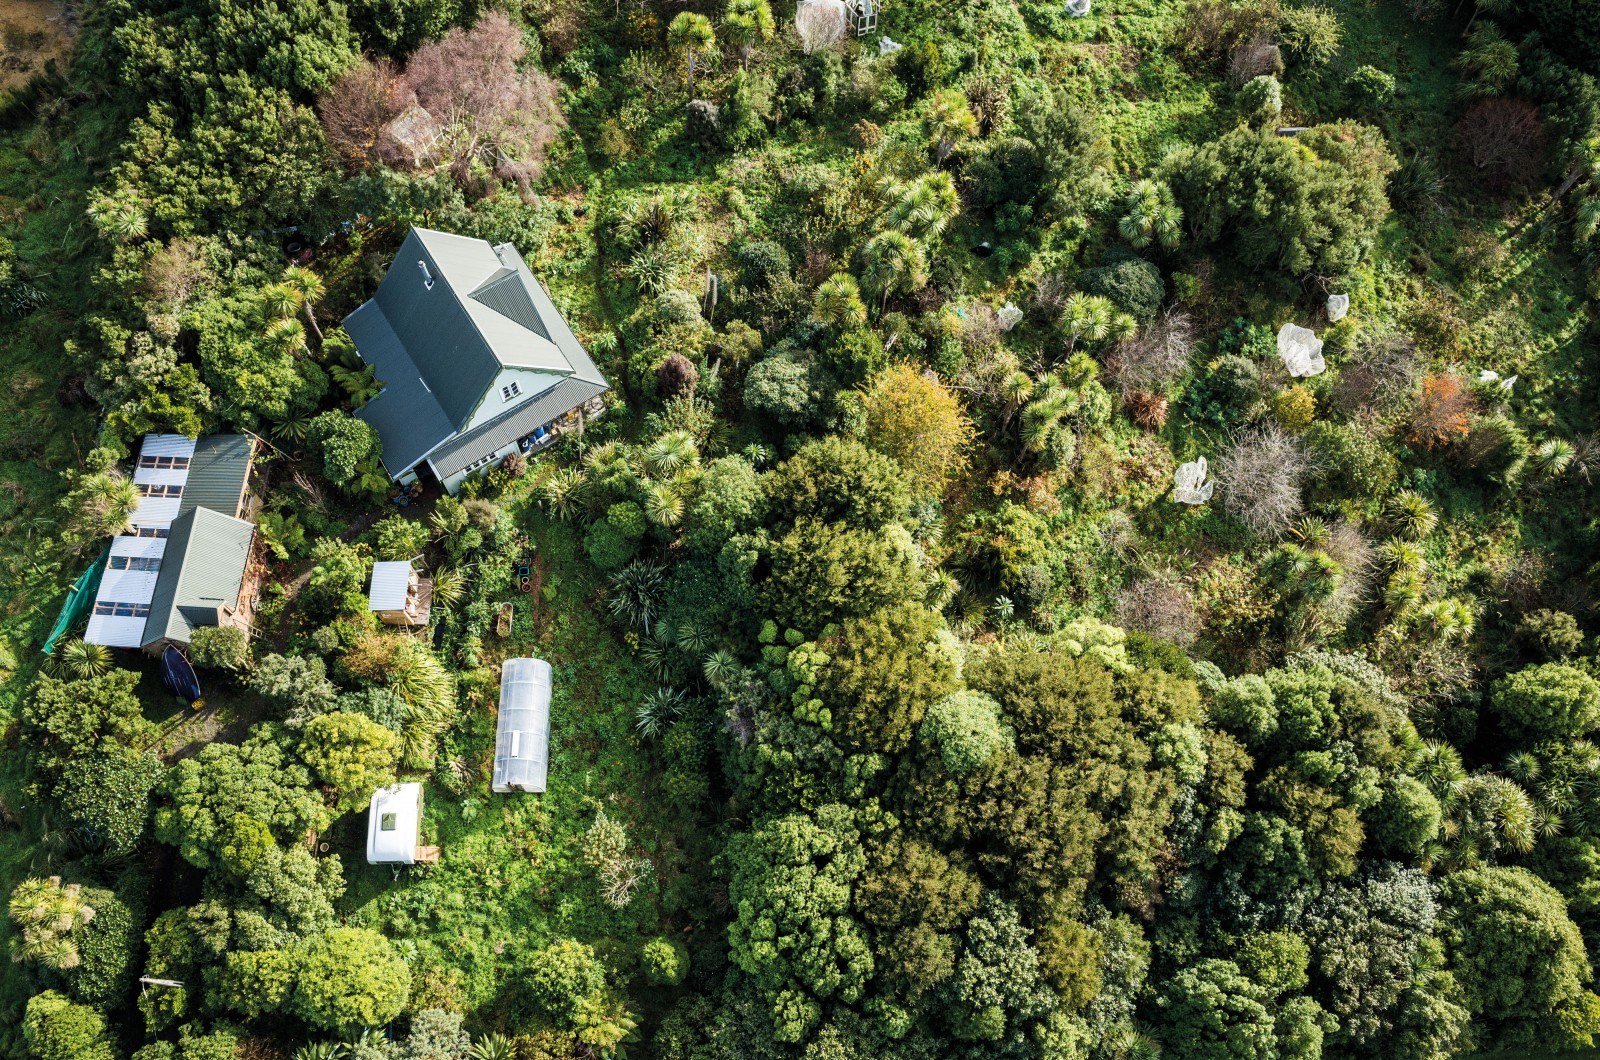 Robert and Robyn Guyton's 'food forest', in Riverton, Southland, envelops their house in fruiting trees, shrubs and vines, supported by a thick understorey of herbs, vegetables and flowers. The forest, established on their two-acre property within just 20 years, now includes some 460 plant species—many of them heritage European varieties sourced from old orchards around the area—and provides more than half of what the Guytons eat.